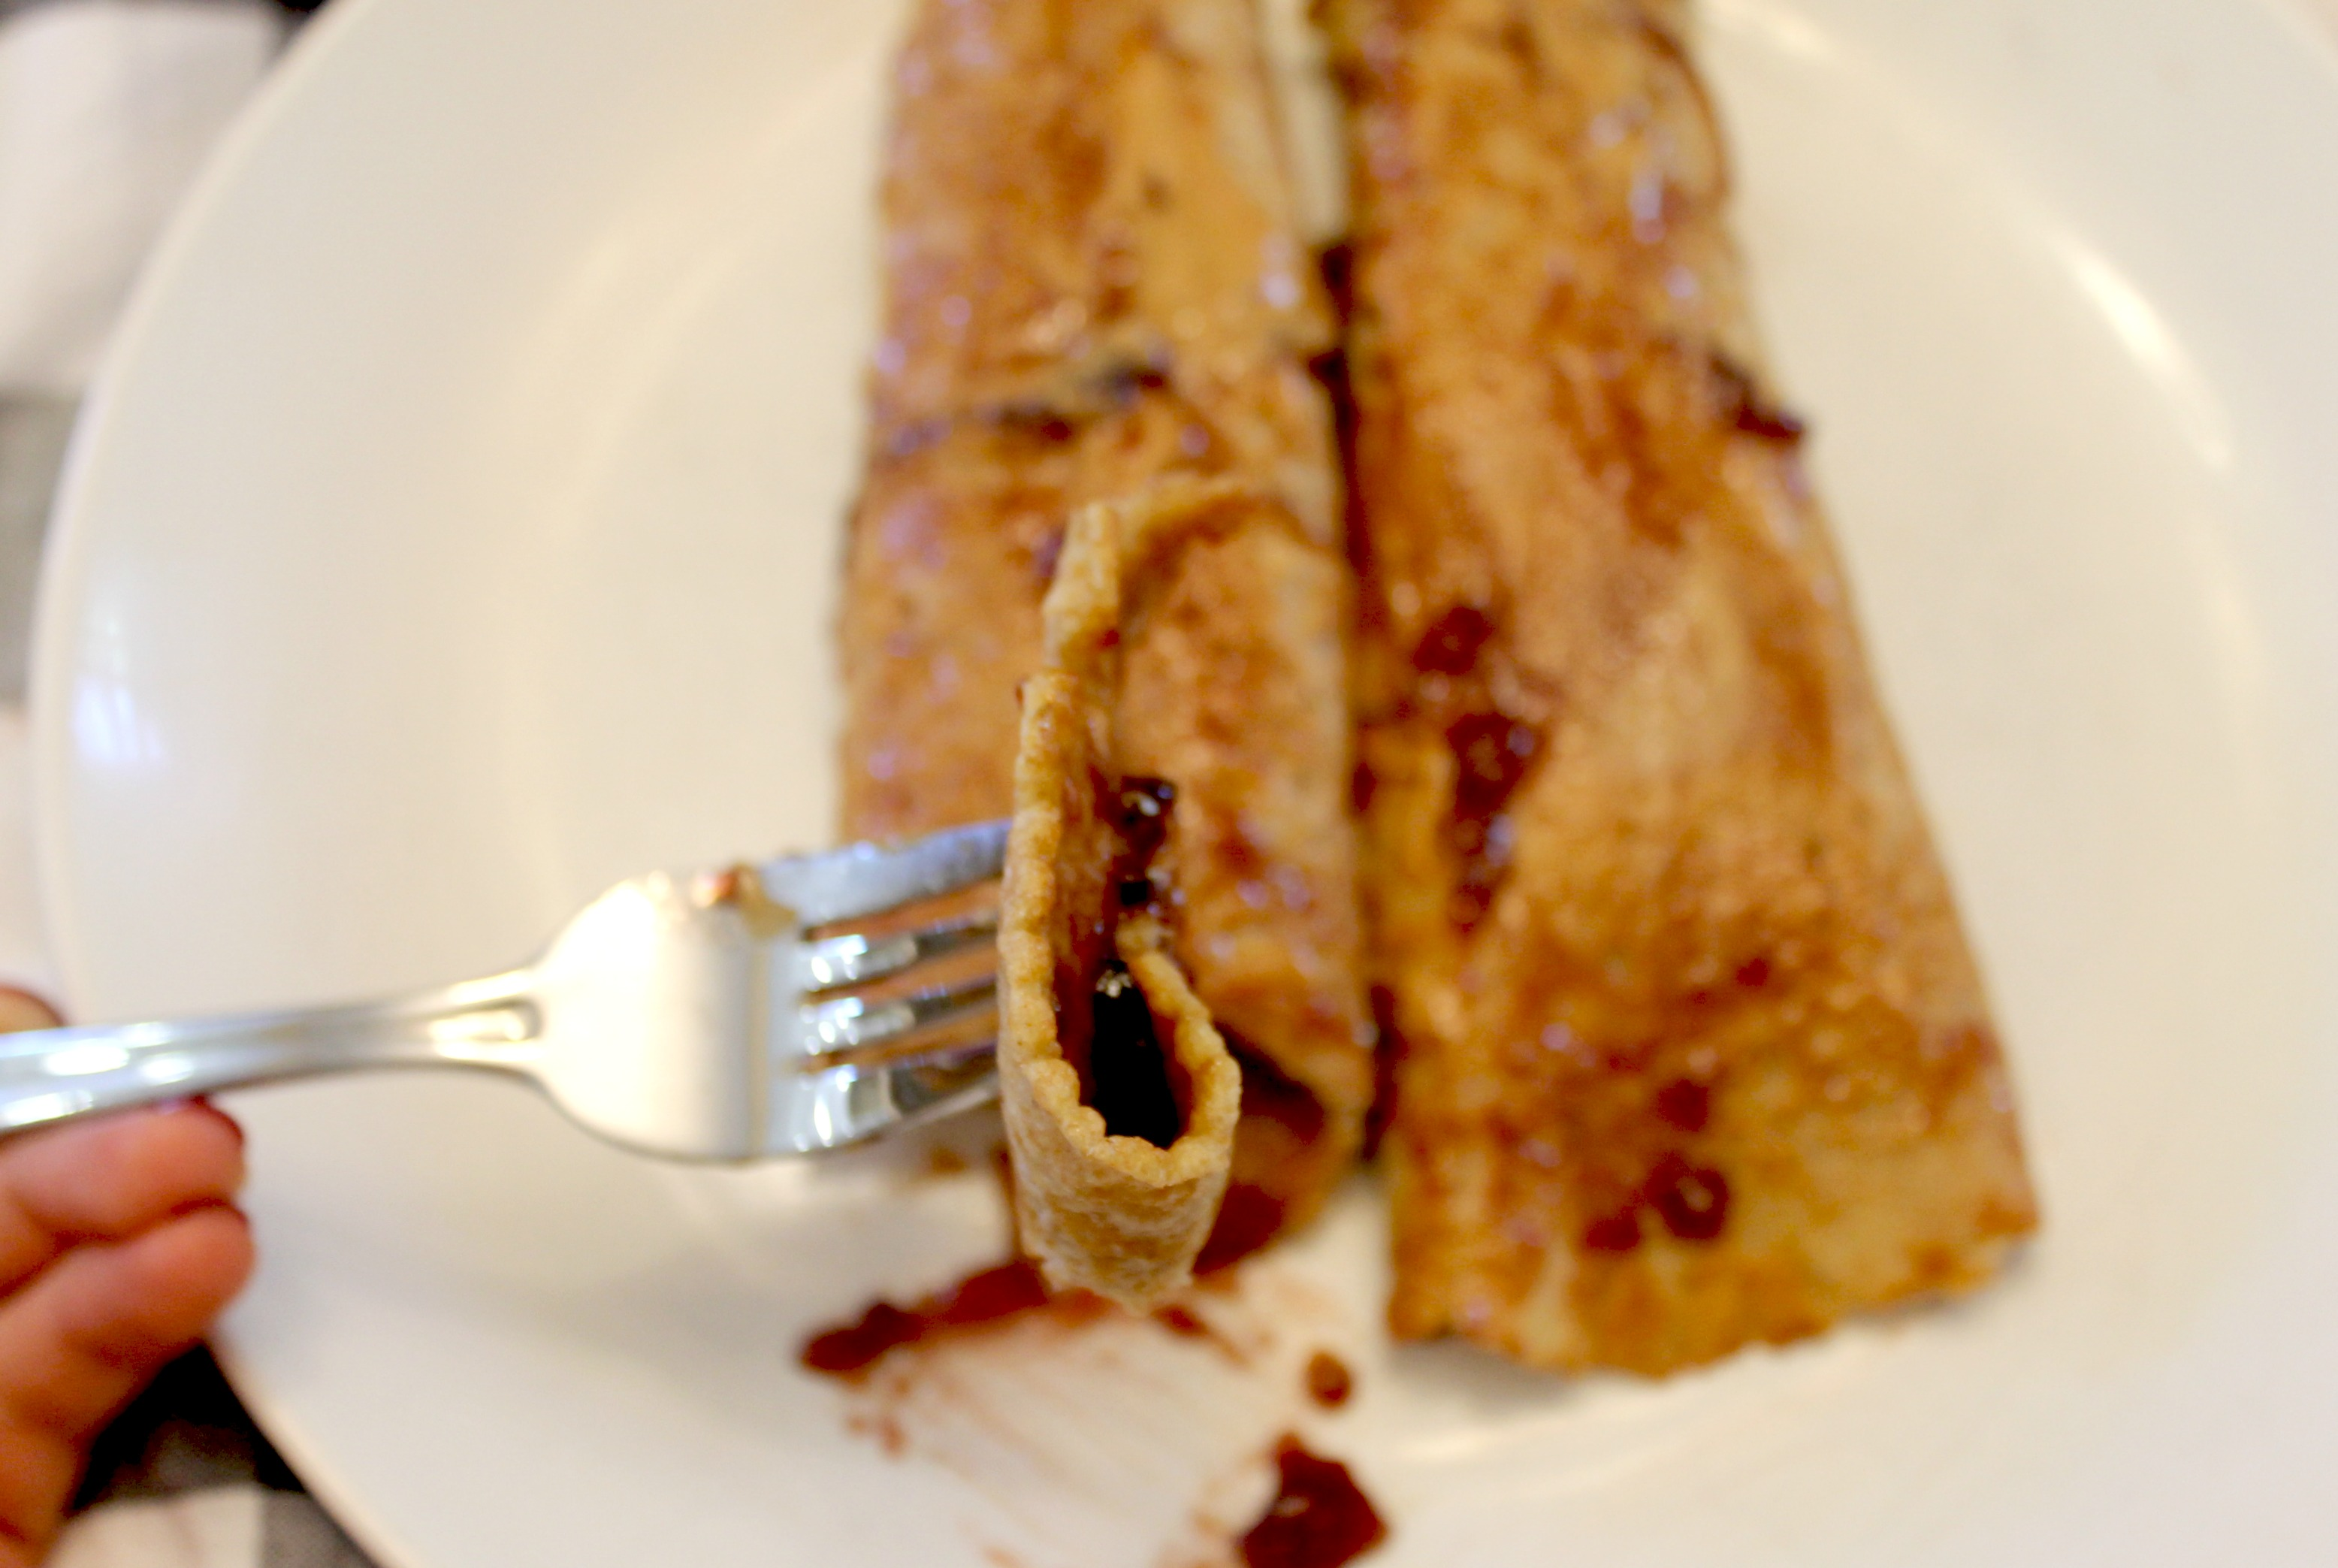 Peanut Butter and Jelly crepes fork